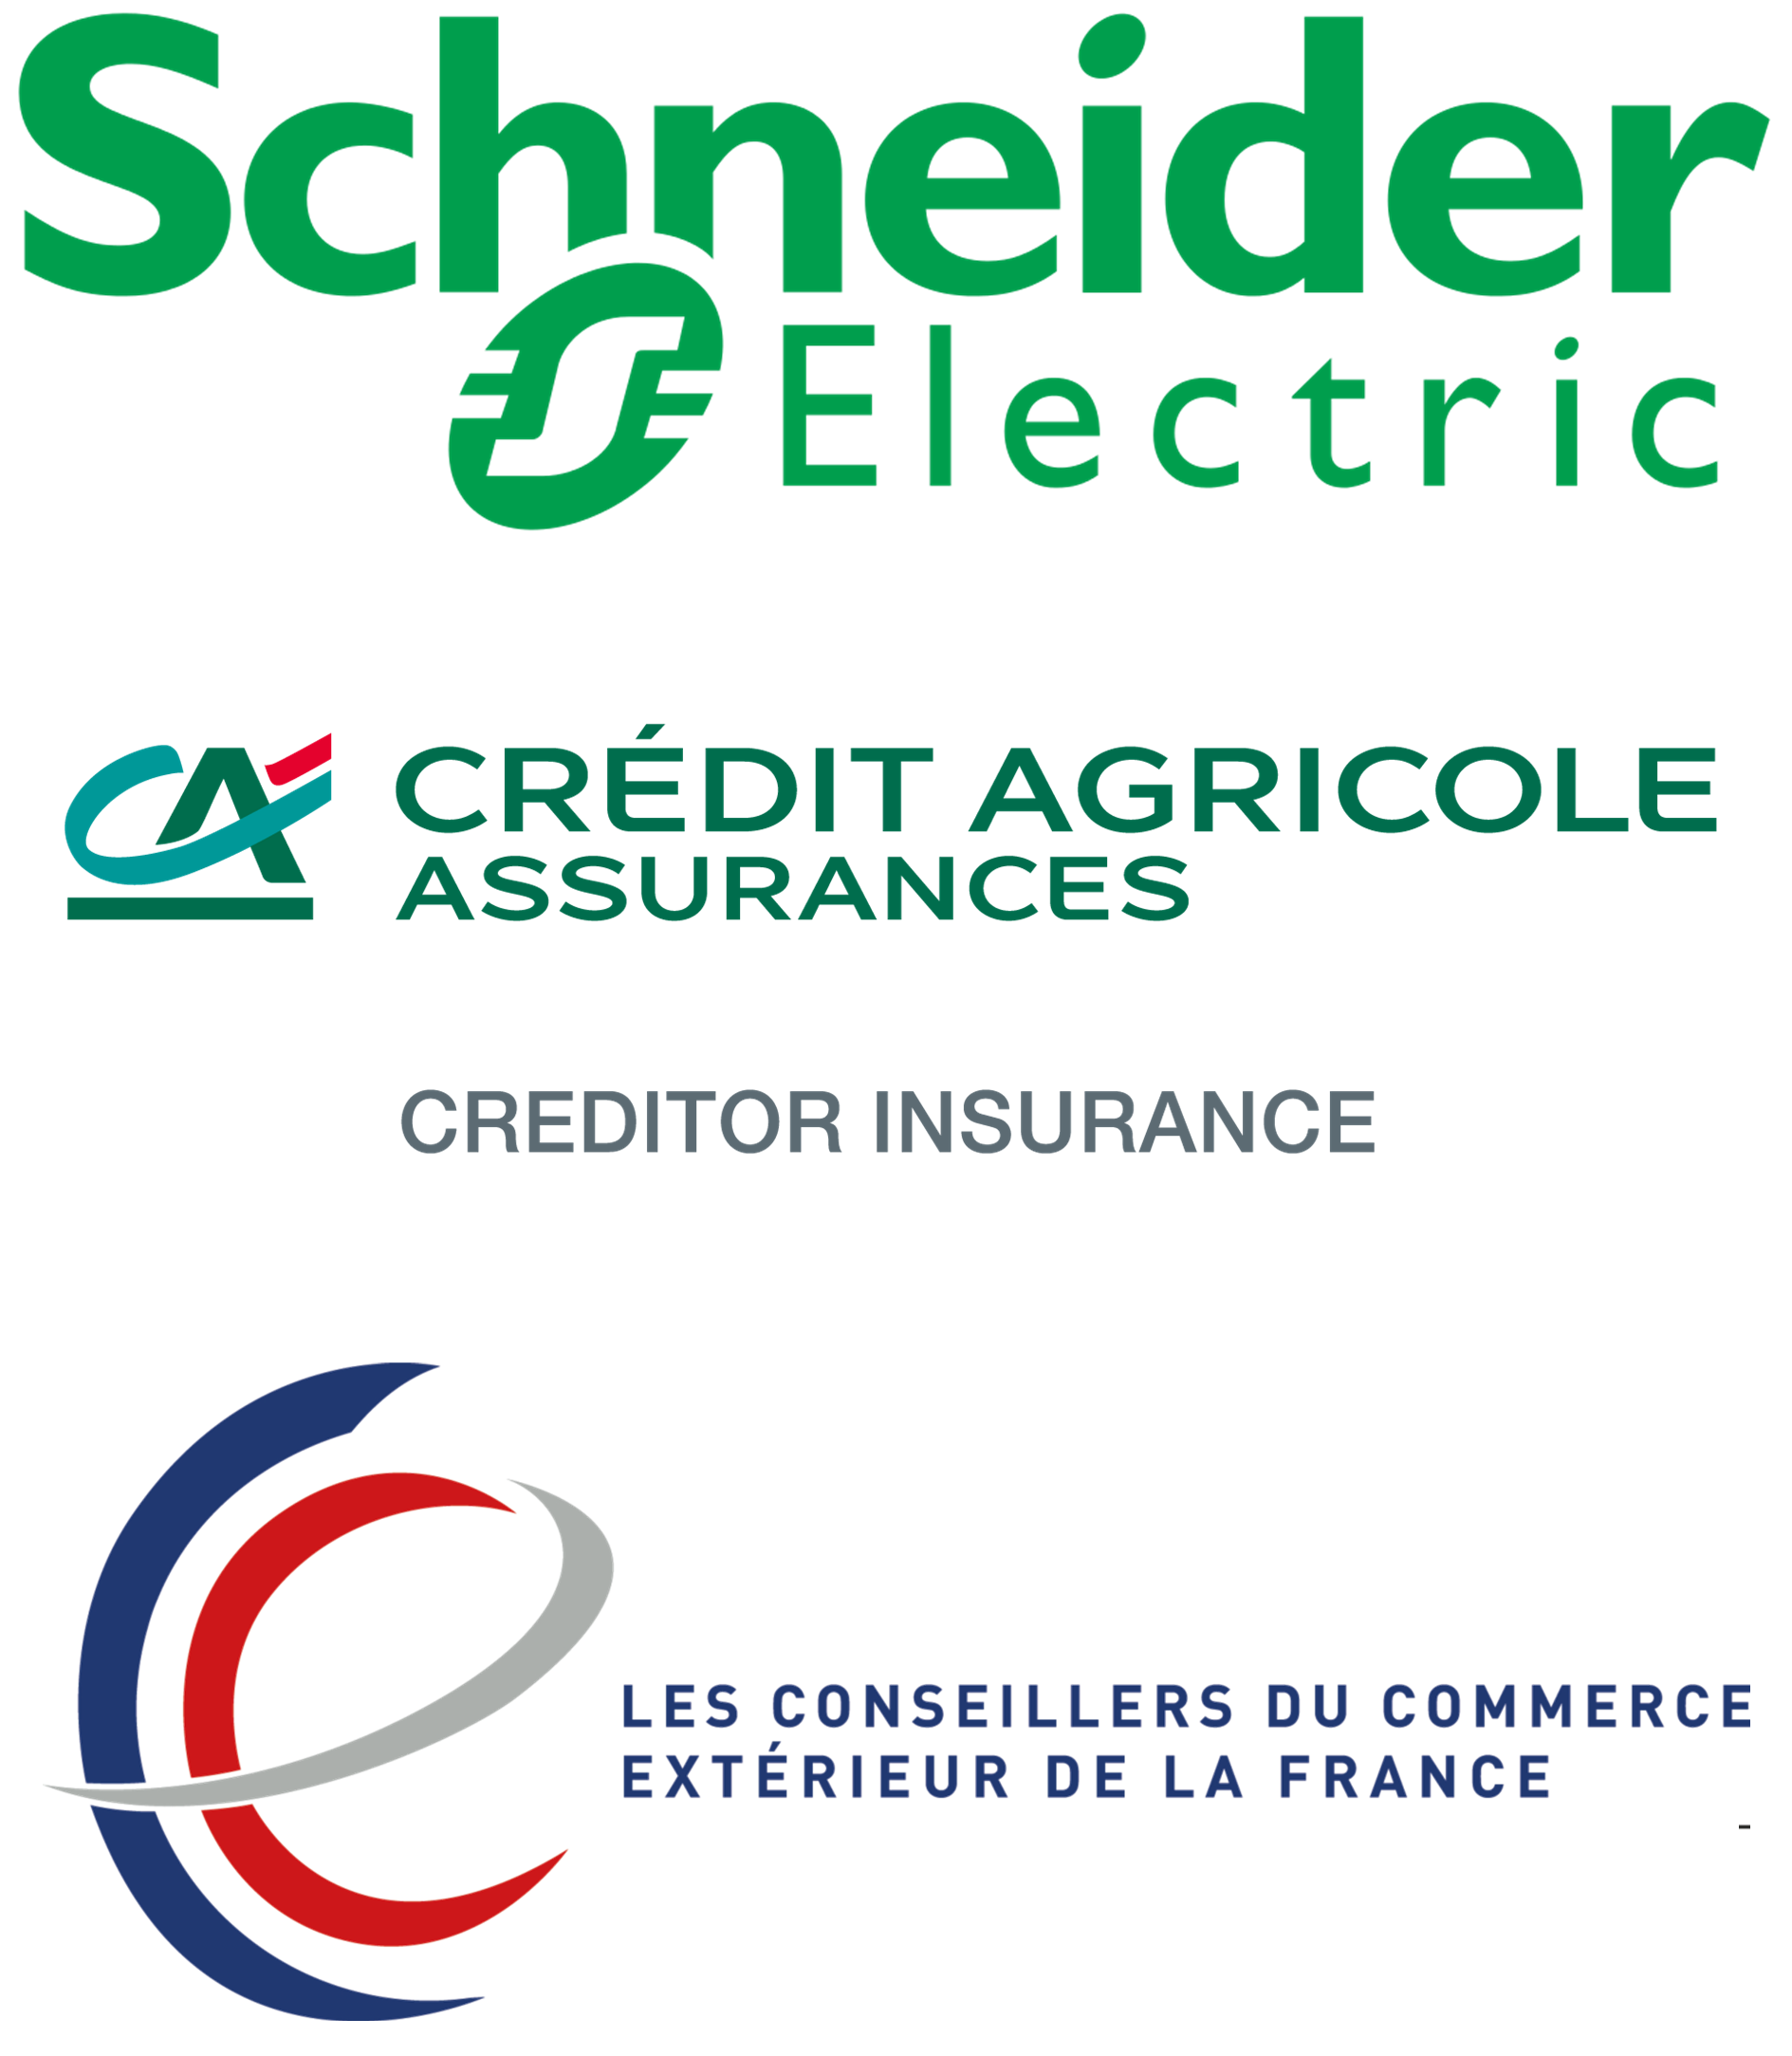 Sponsors : Schneider Electric, Credit Agricole Corporate and Investment Bank, Conseillers du Commerce Exterieur de la France